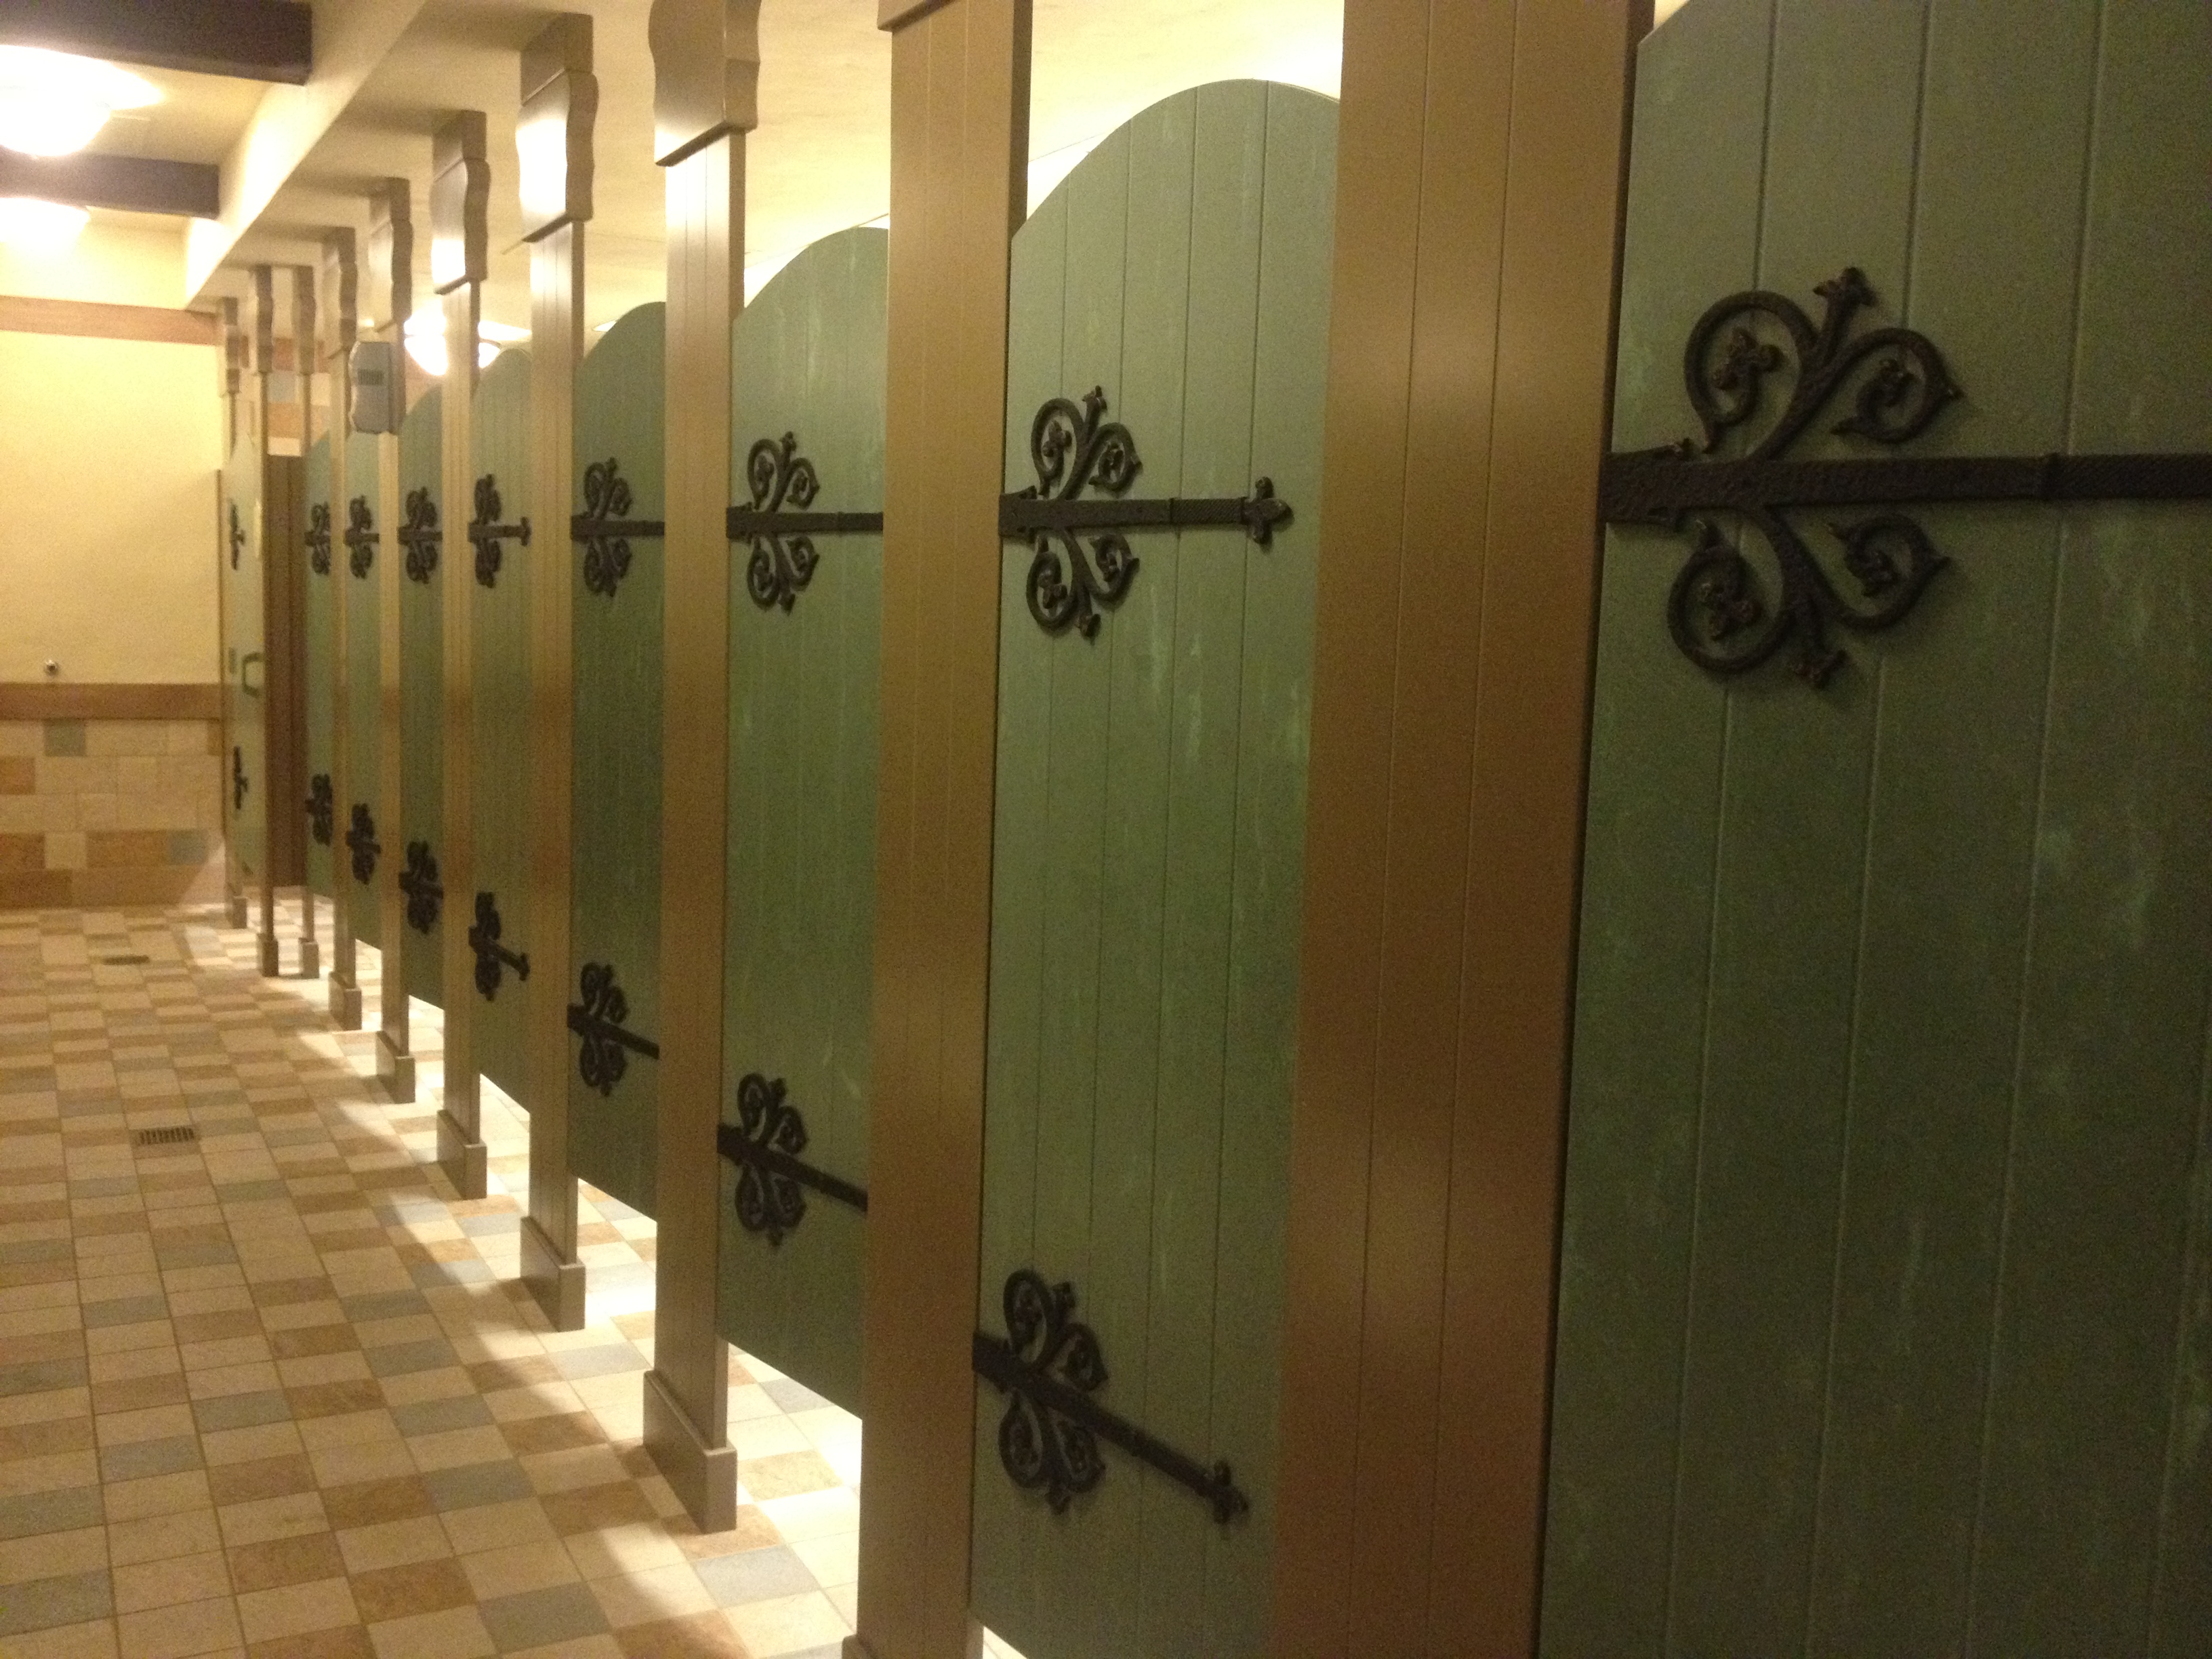 Tour of the 8 million new fantasyland tangled bathroom for Bathroom photos of ladies